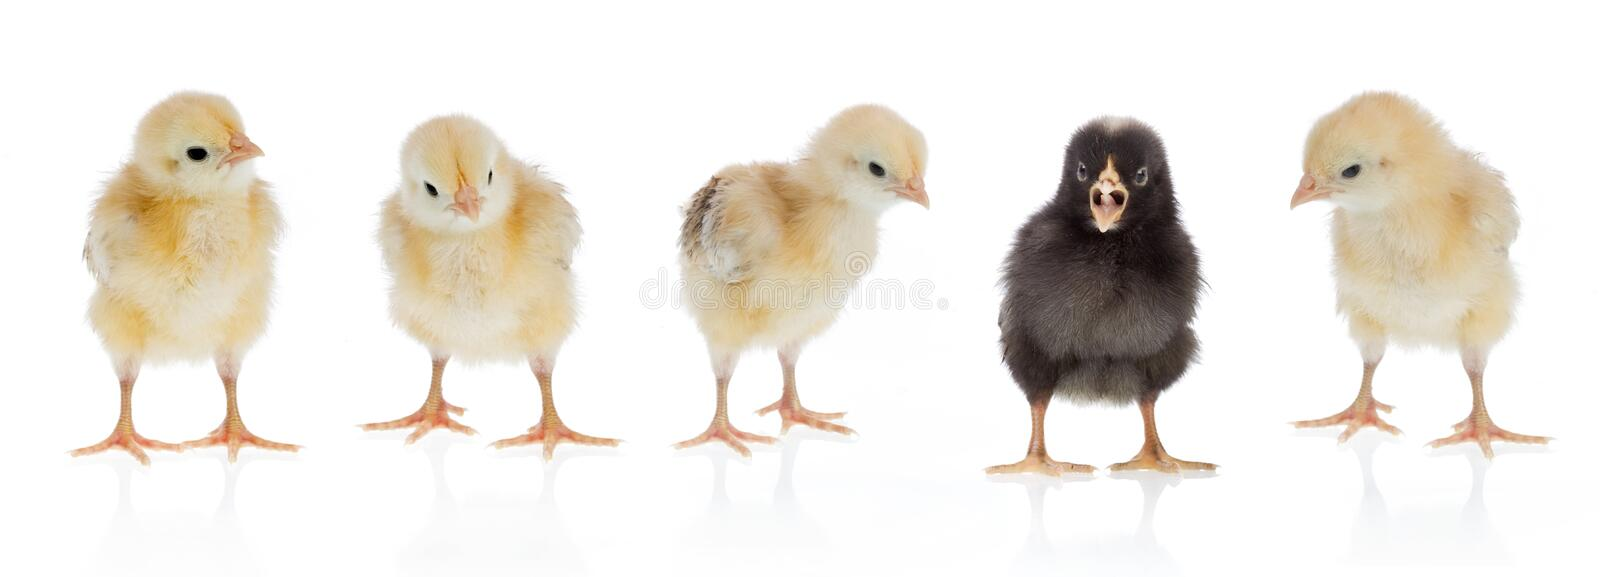 Unique chicken stock images